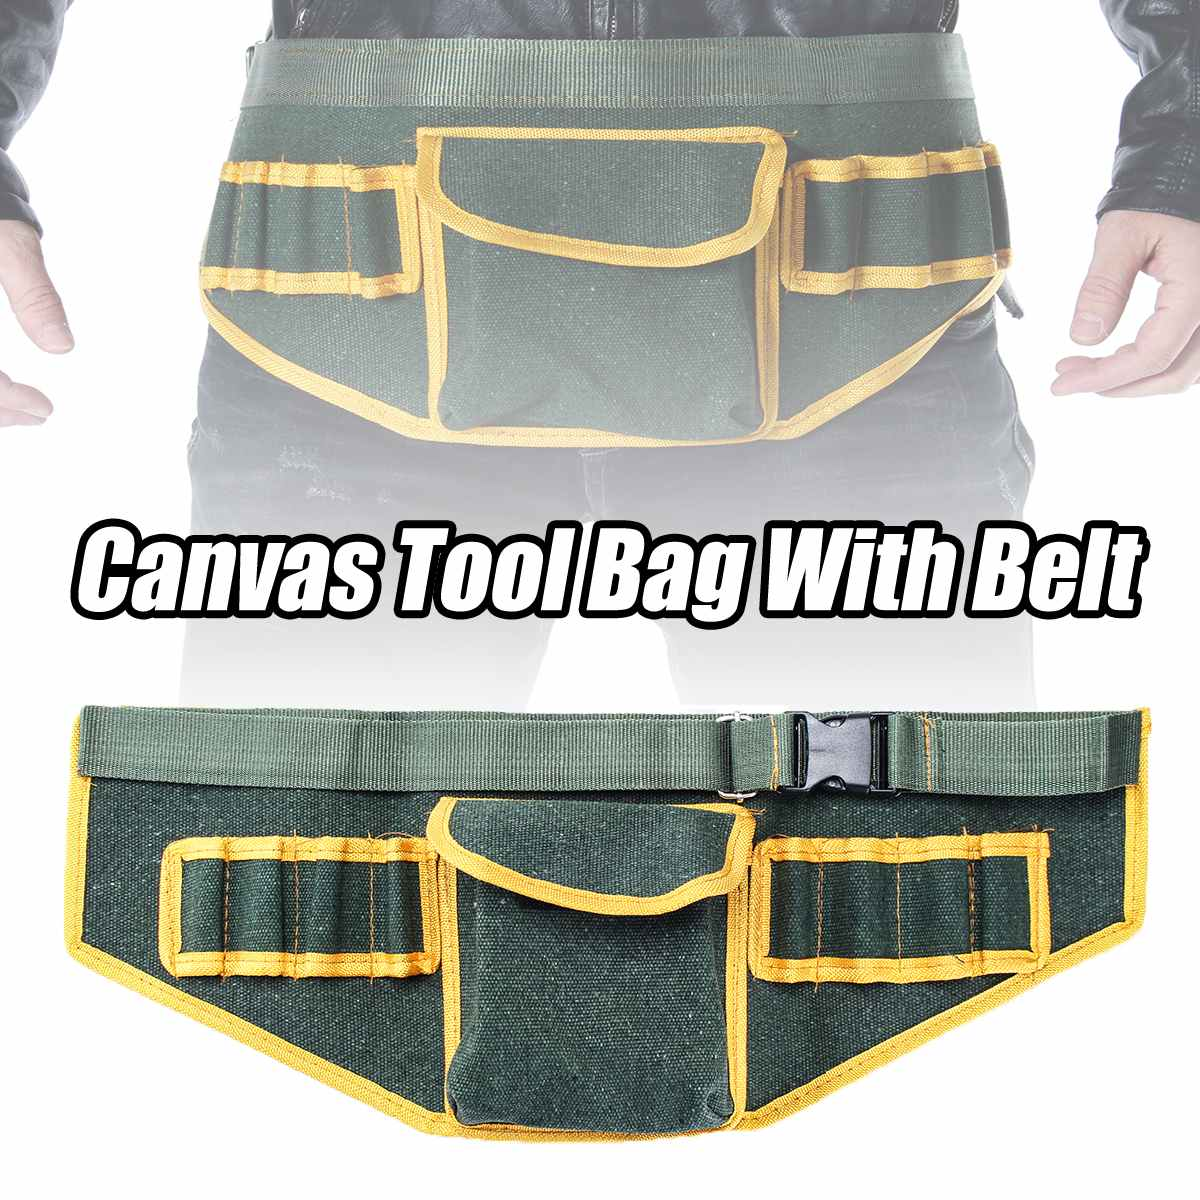 Hardware Electrical Tool Bags Adjustable Waist Belt Tools Pockets Construction Packs Thicker Canvas Bag Without Tool